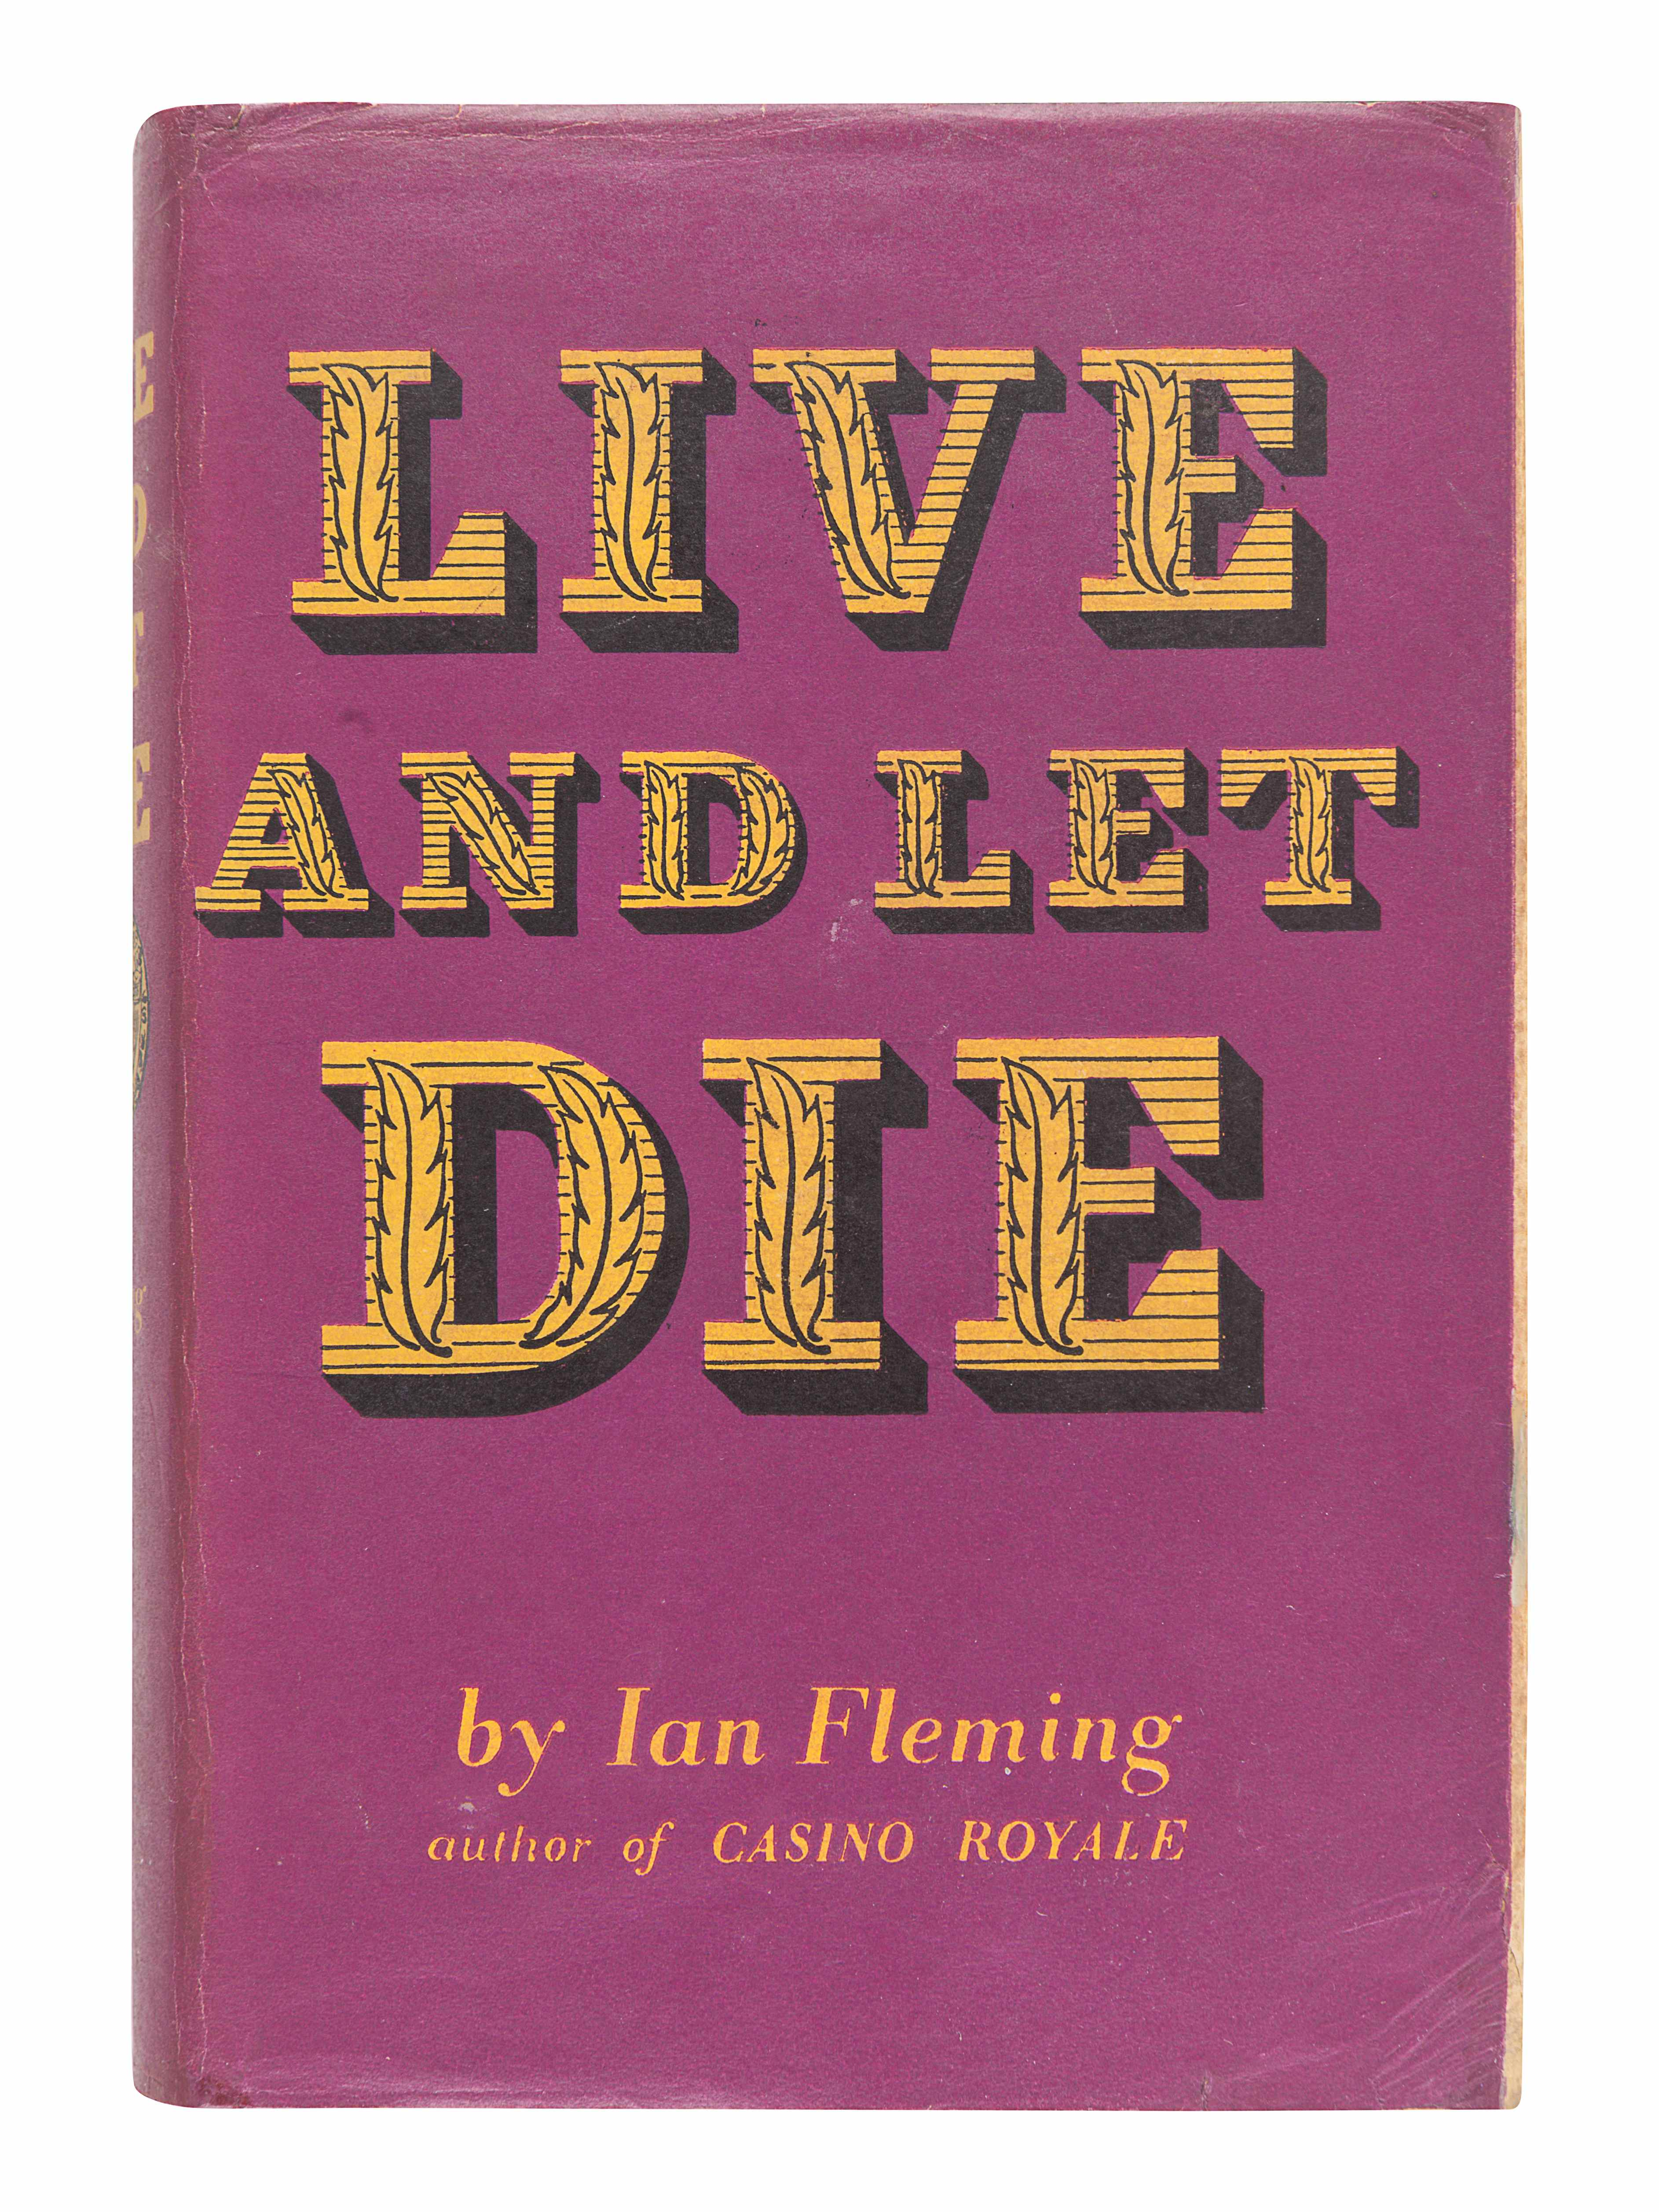 FLEMING, Ian (1908-1964). Live and Let Die. London: Jonathan Cape, 1954.